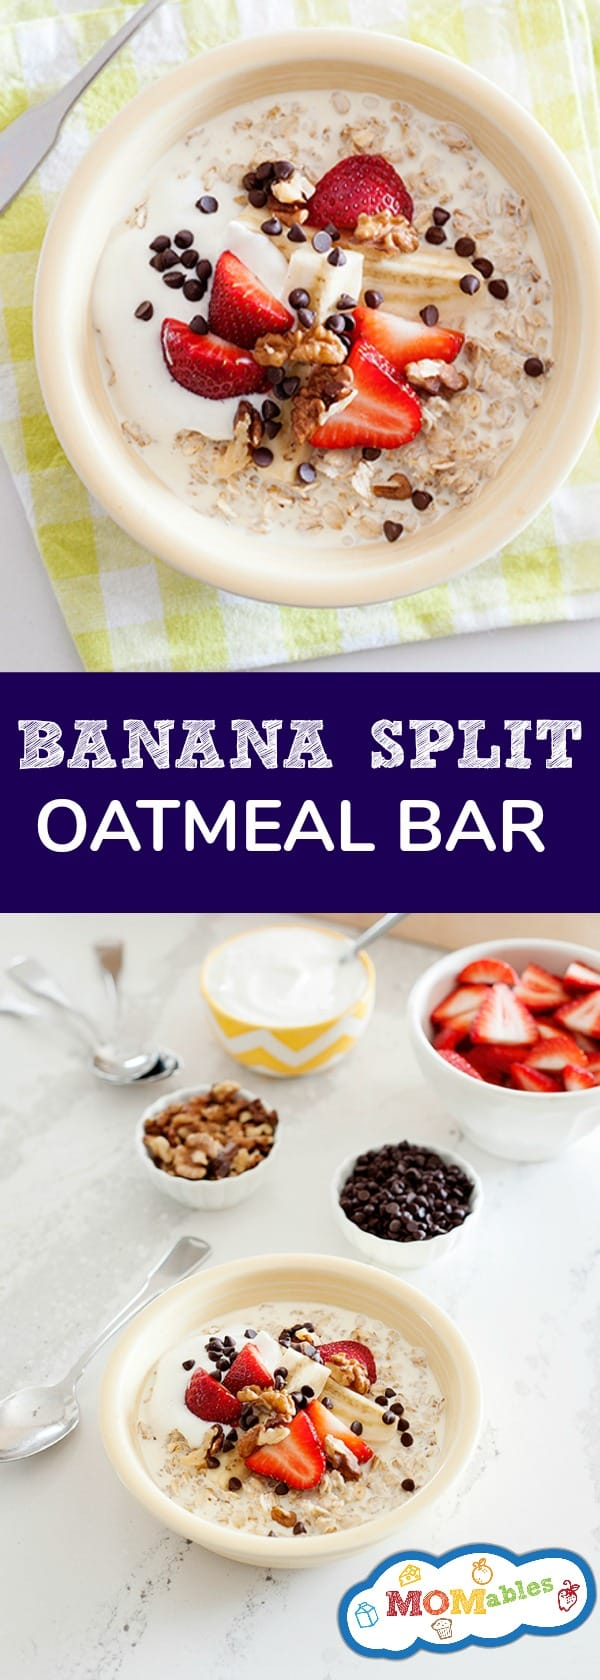 Surprise your family with this Banana Split Oatmeal Bar for breakfast! It's easy to make and full of good-for-you ingredients. You can feel good about eating this dessert for breakfast!